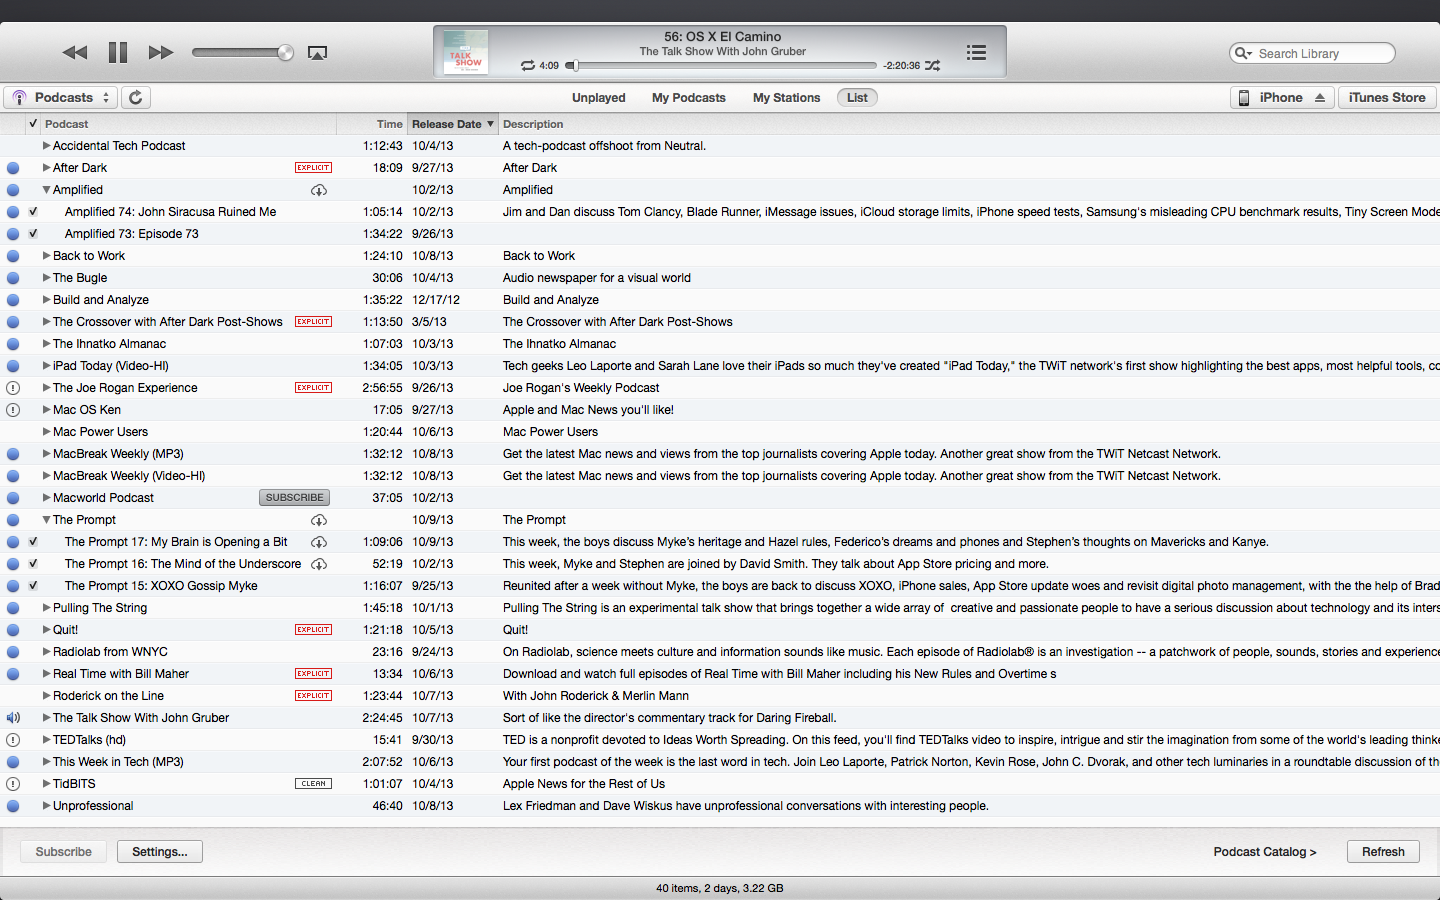 Explaining Podcasts in iTunes 11 1 - TidBITS